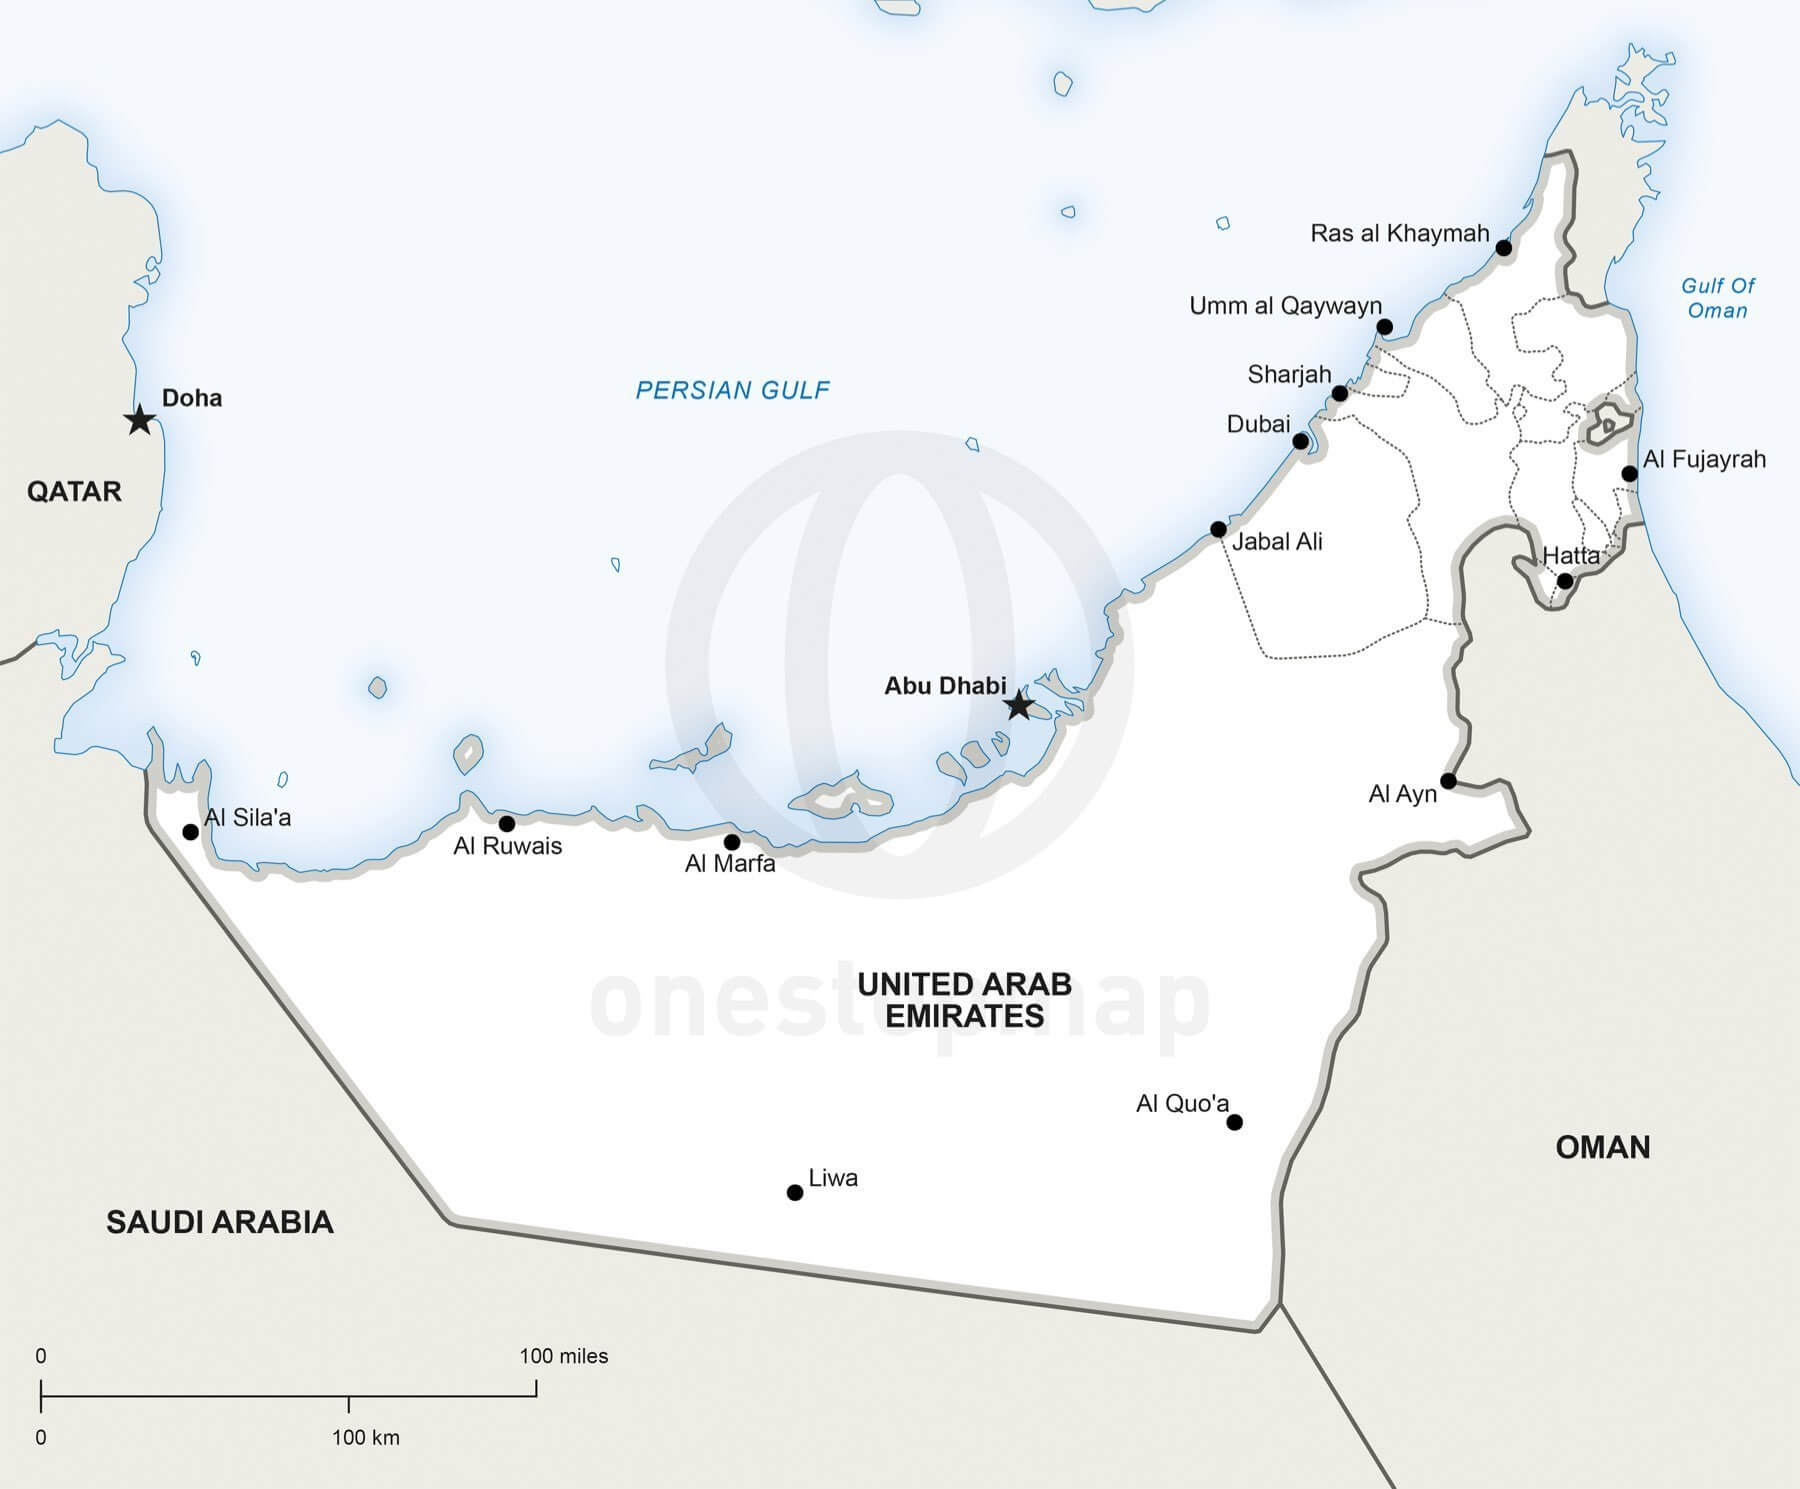 map of united arab emirates political